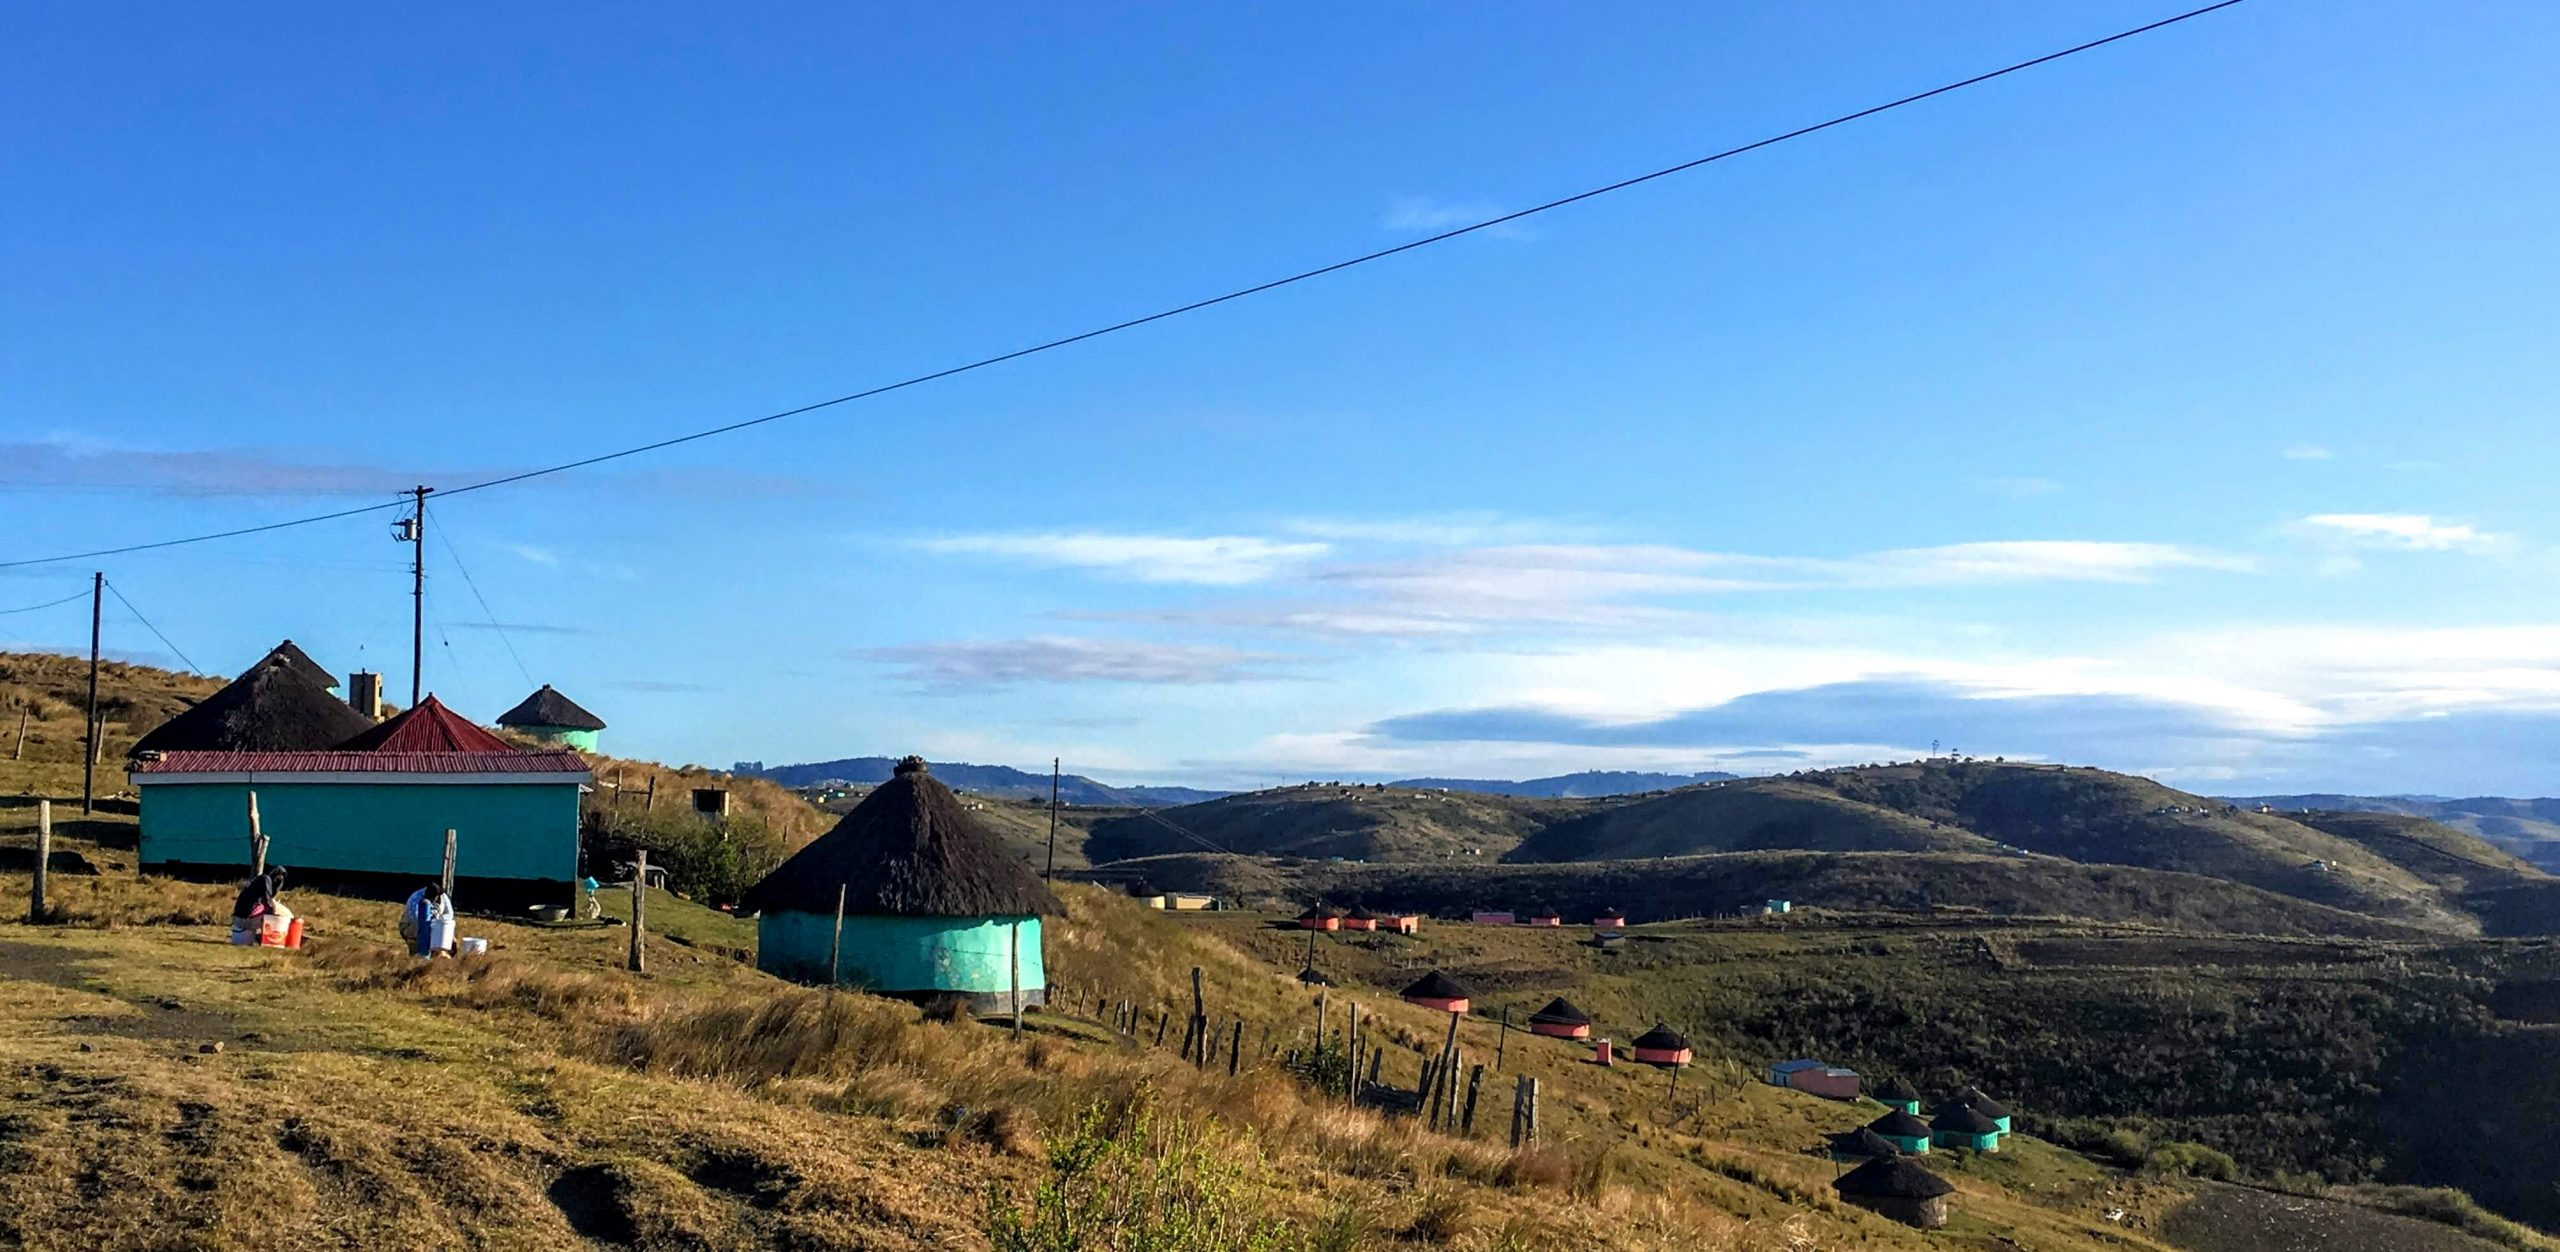 Traversing the Transkei